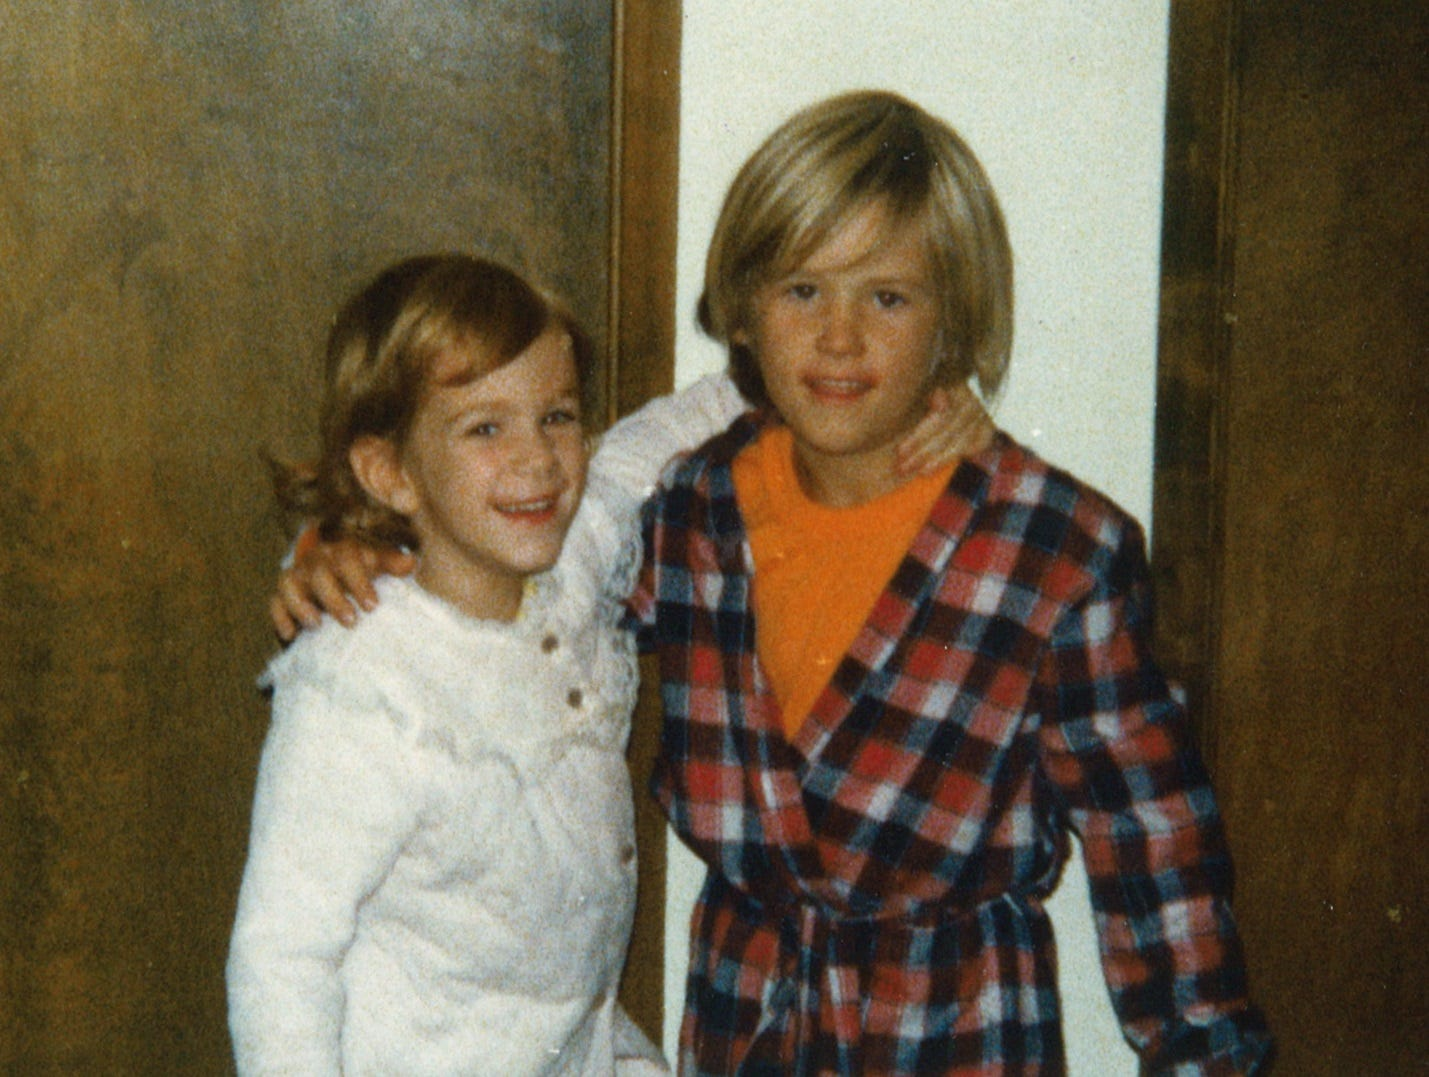 Halverson, around 6 in this photo with little sister Tiffeny, grew up in Salem.